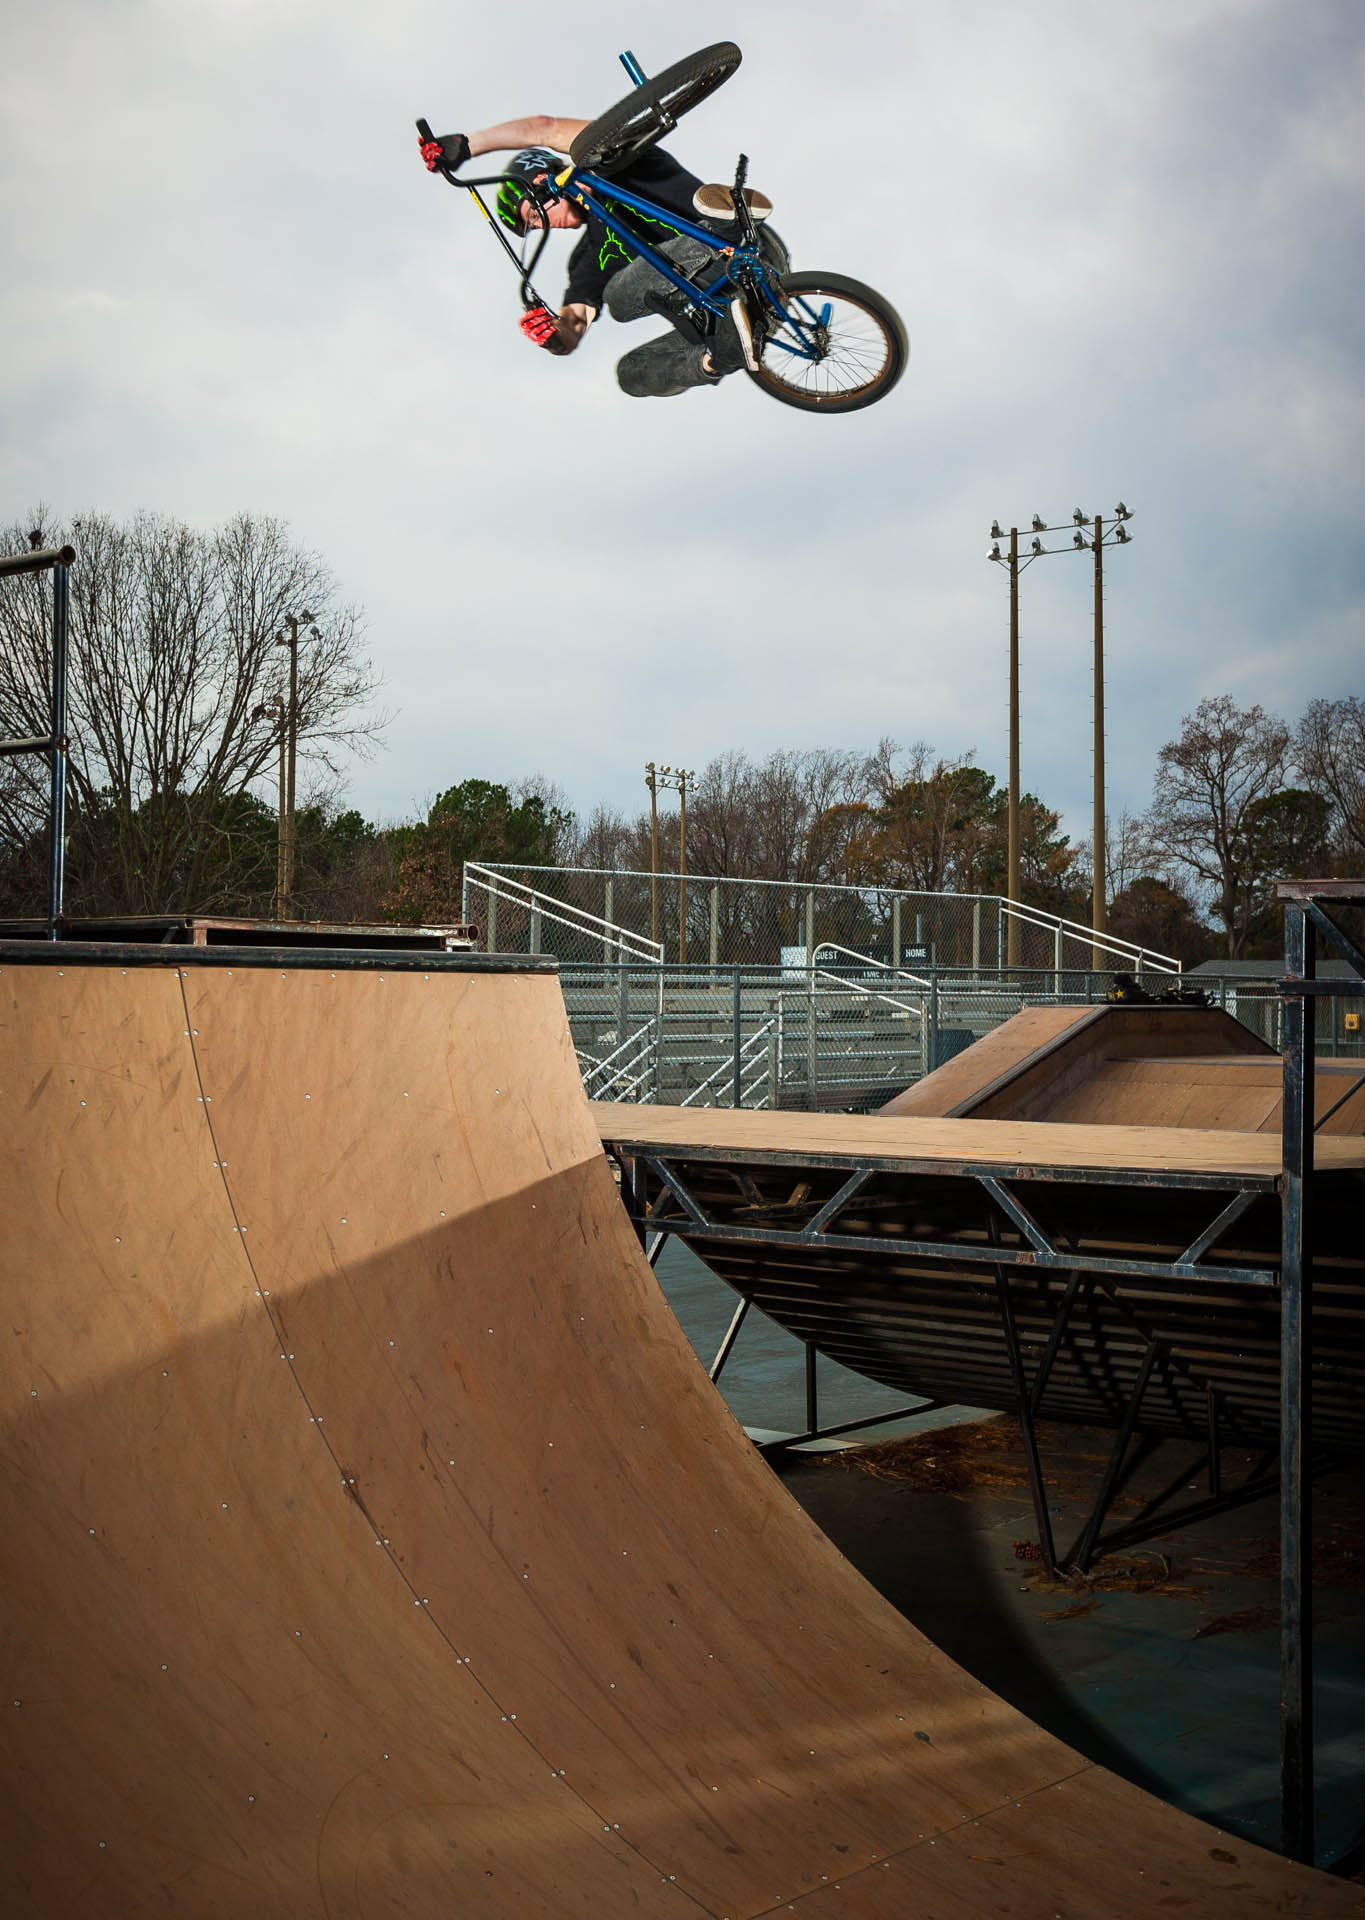 /photo/2013/0321/as_bmx_greenville12_1536.jpg